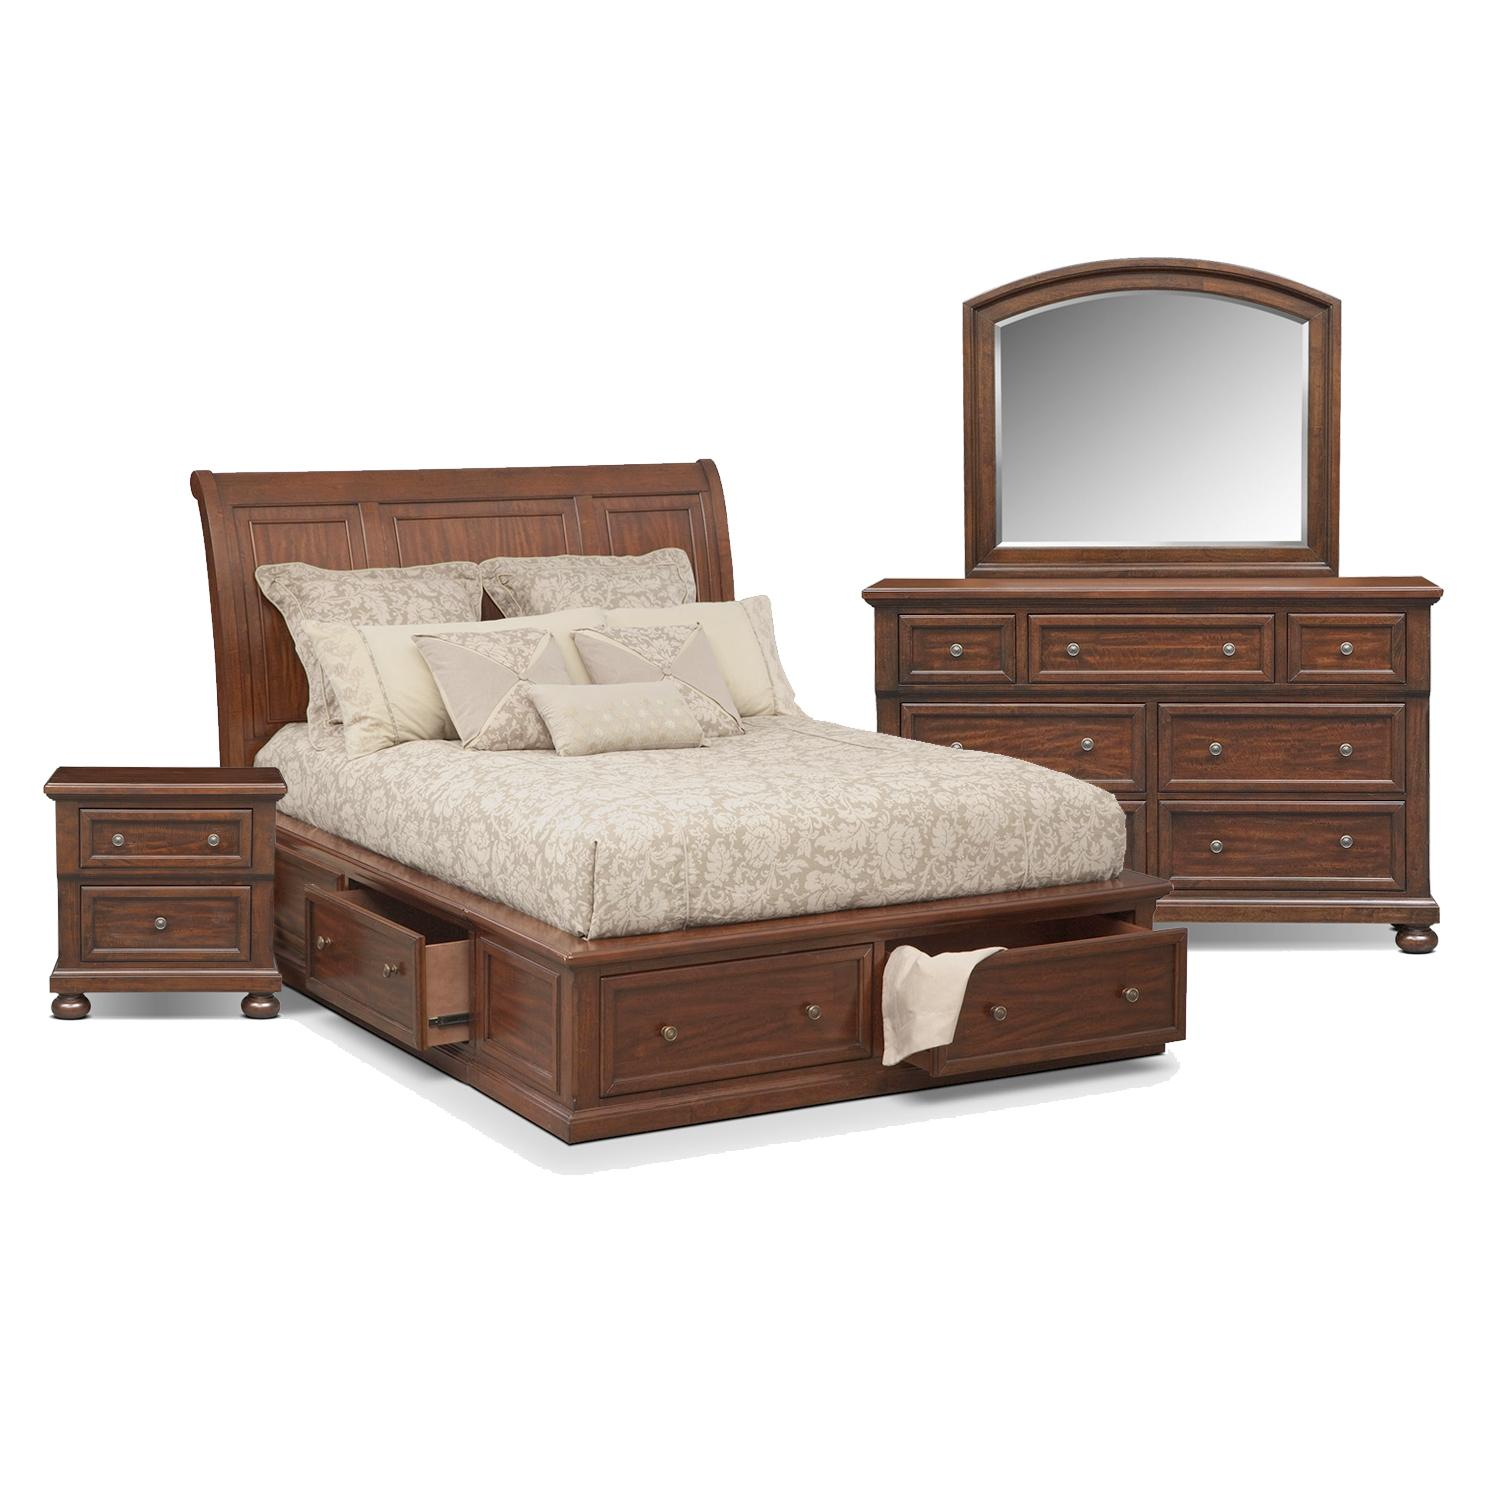 Bedroom Sets Erie Pa bedroom furniture | value city furniture